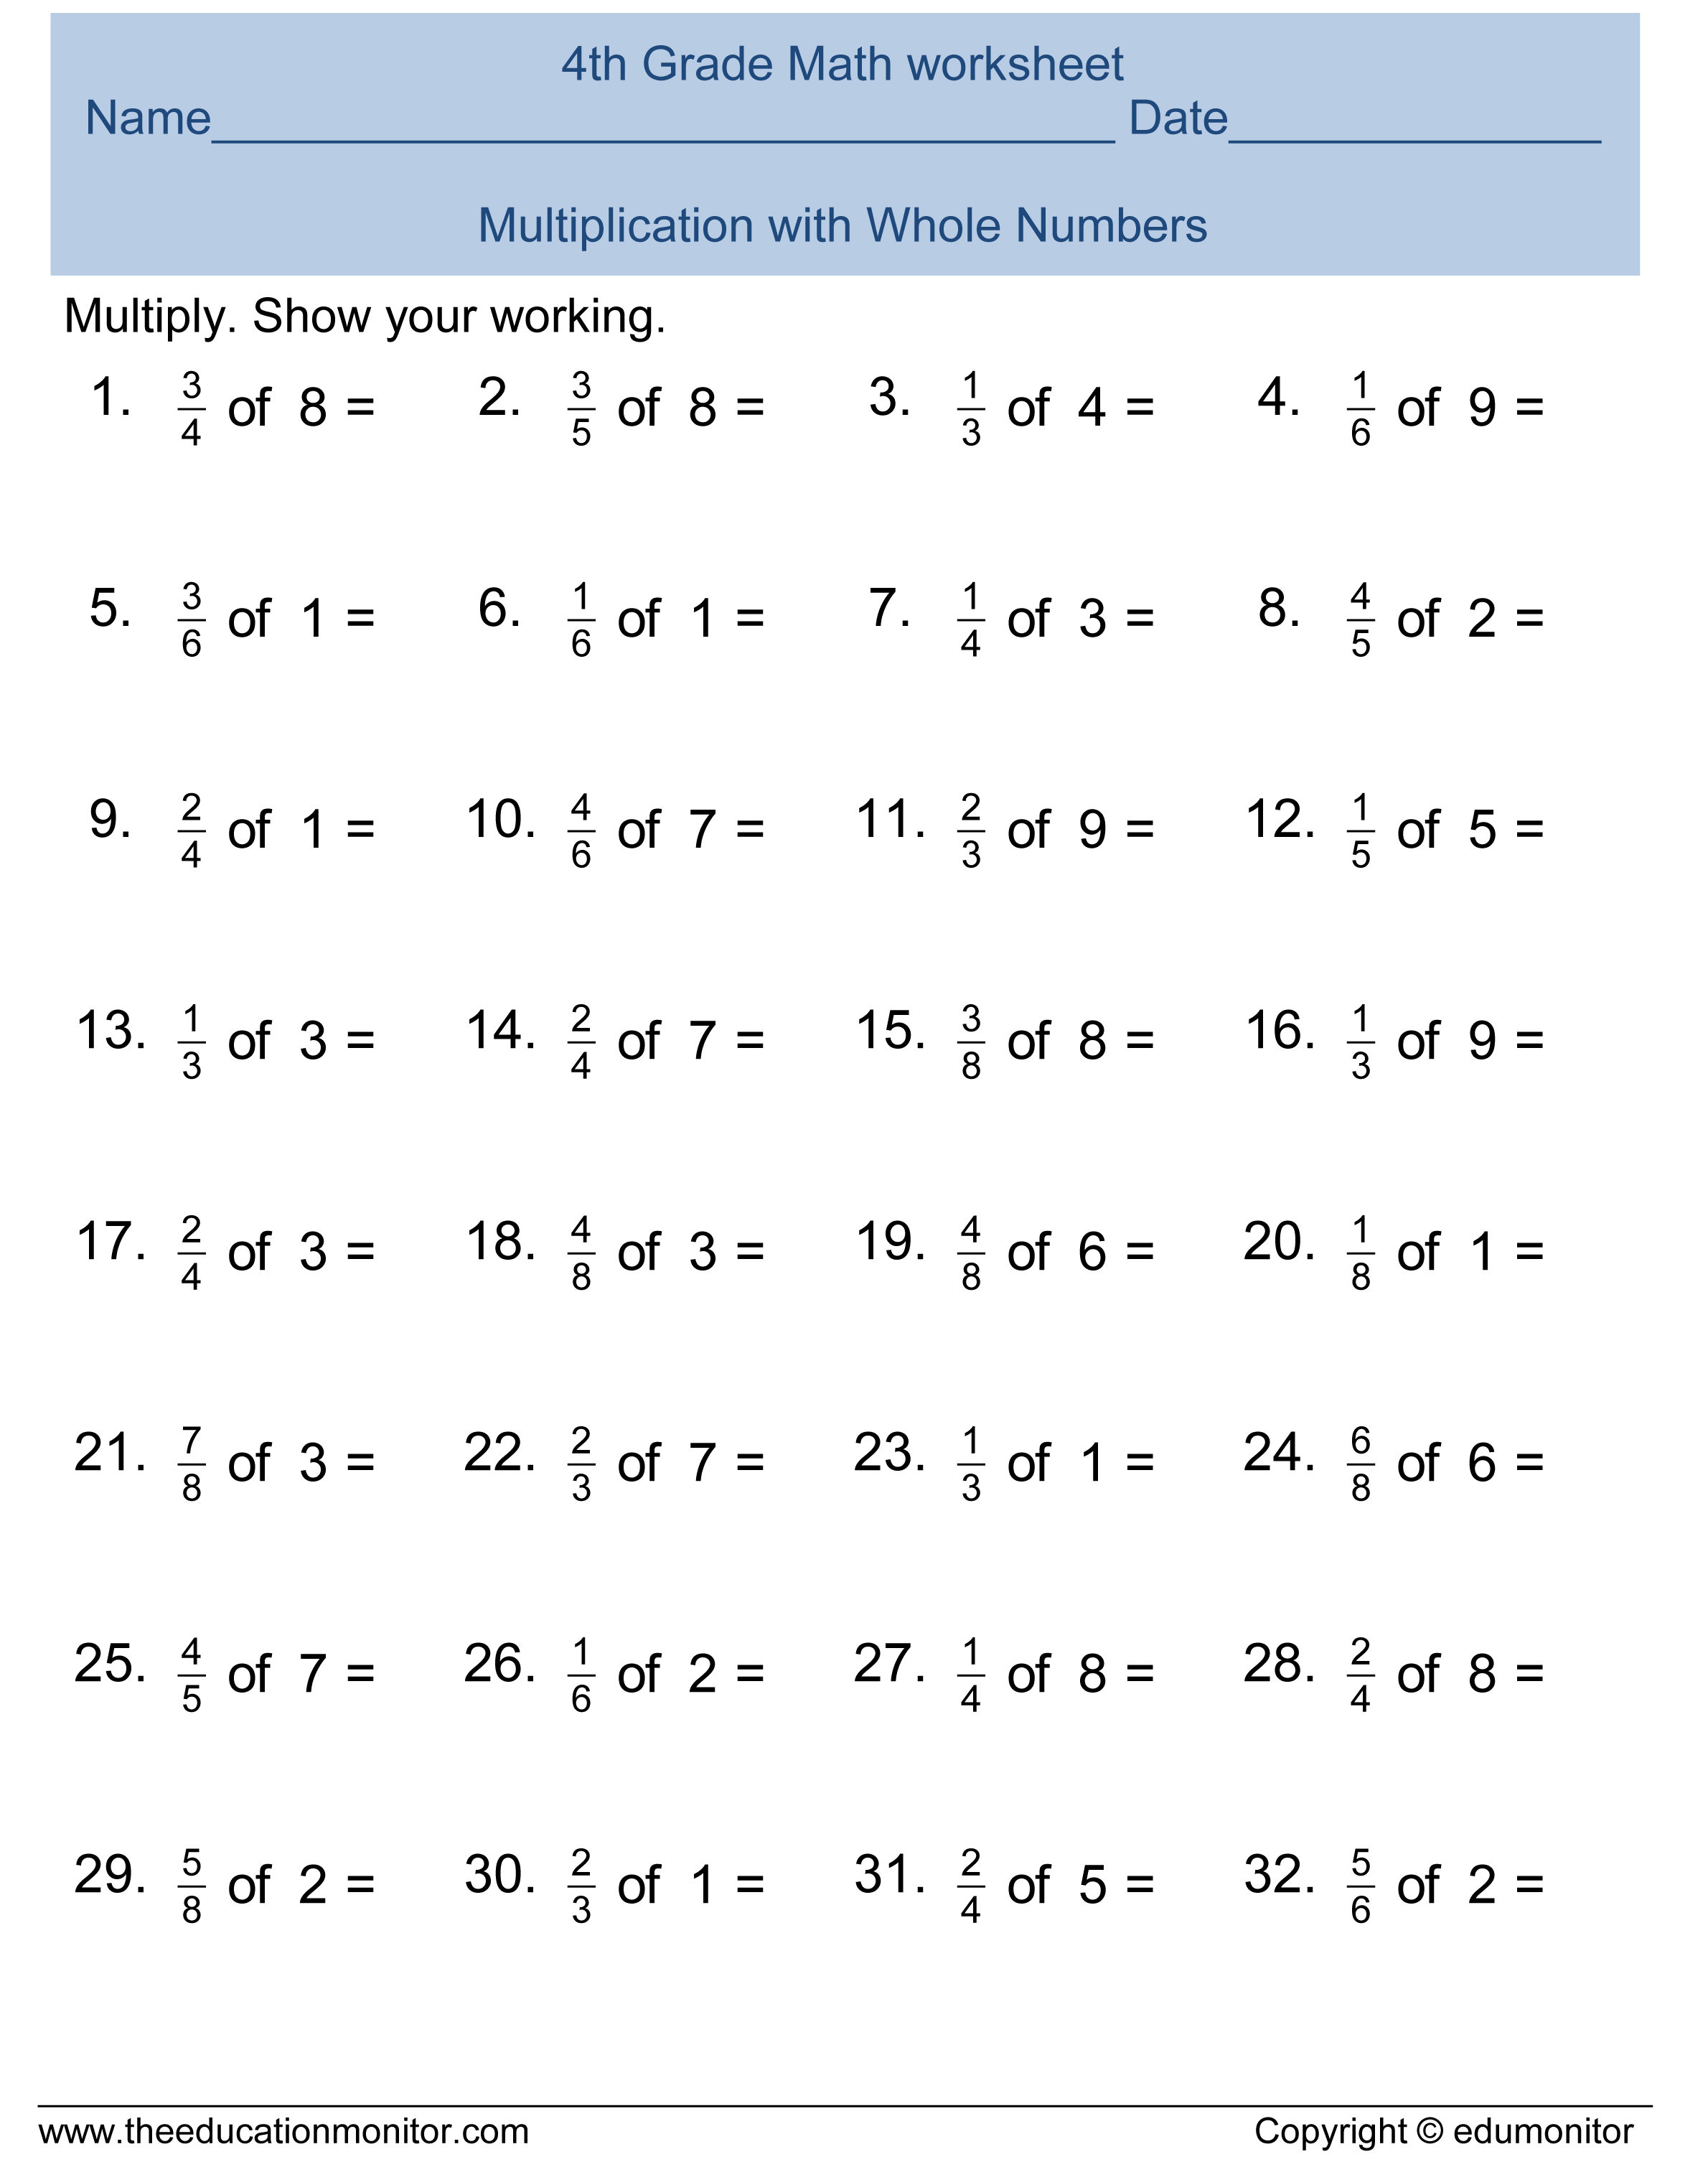 math worksheet : free printable worksheets for 4th grade : Free Math Worksheets For 4th Graders